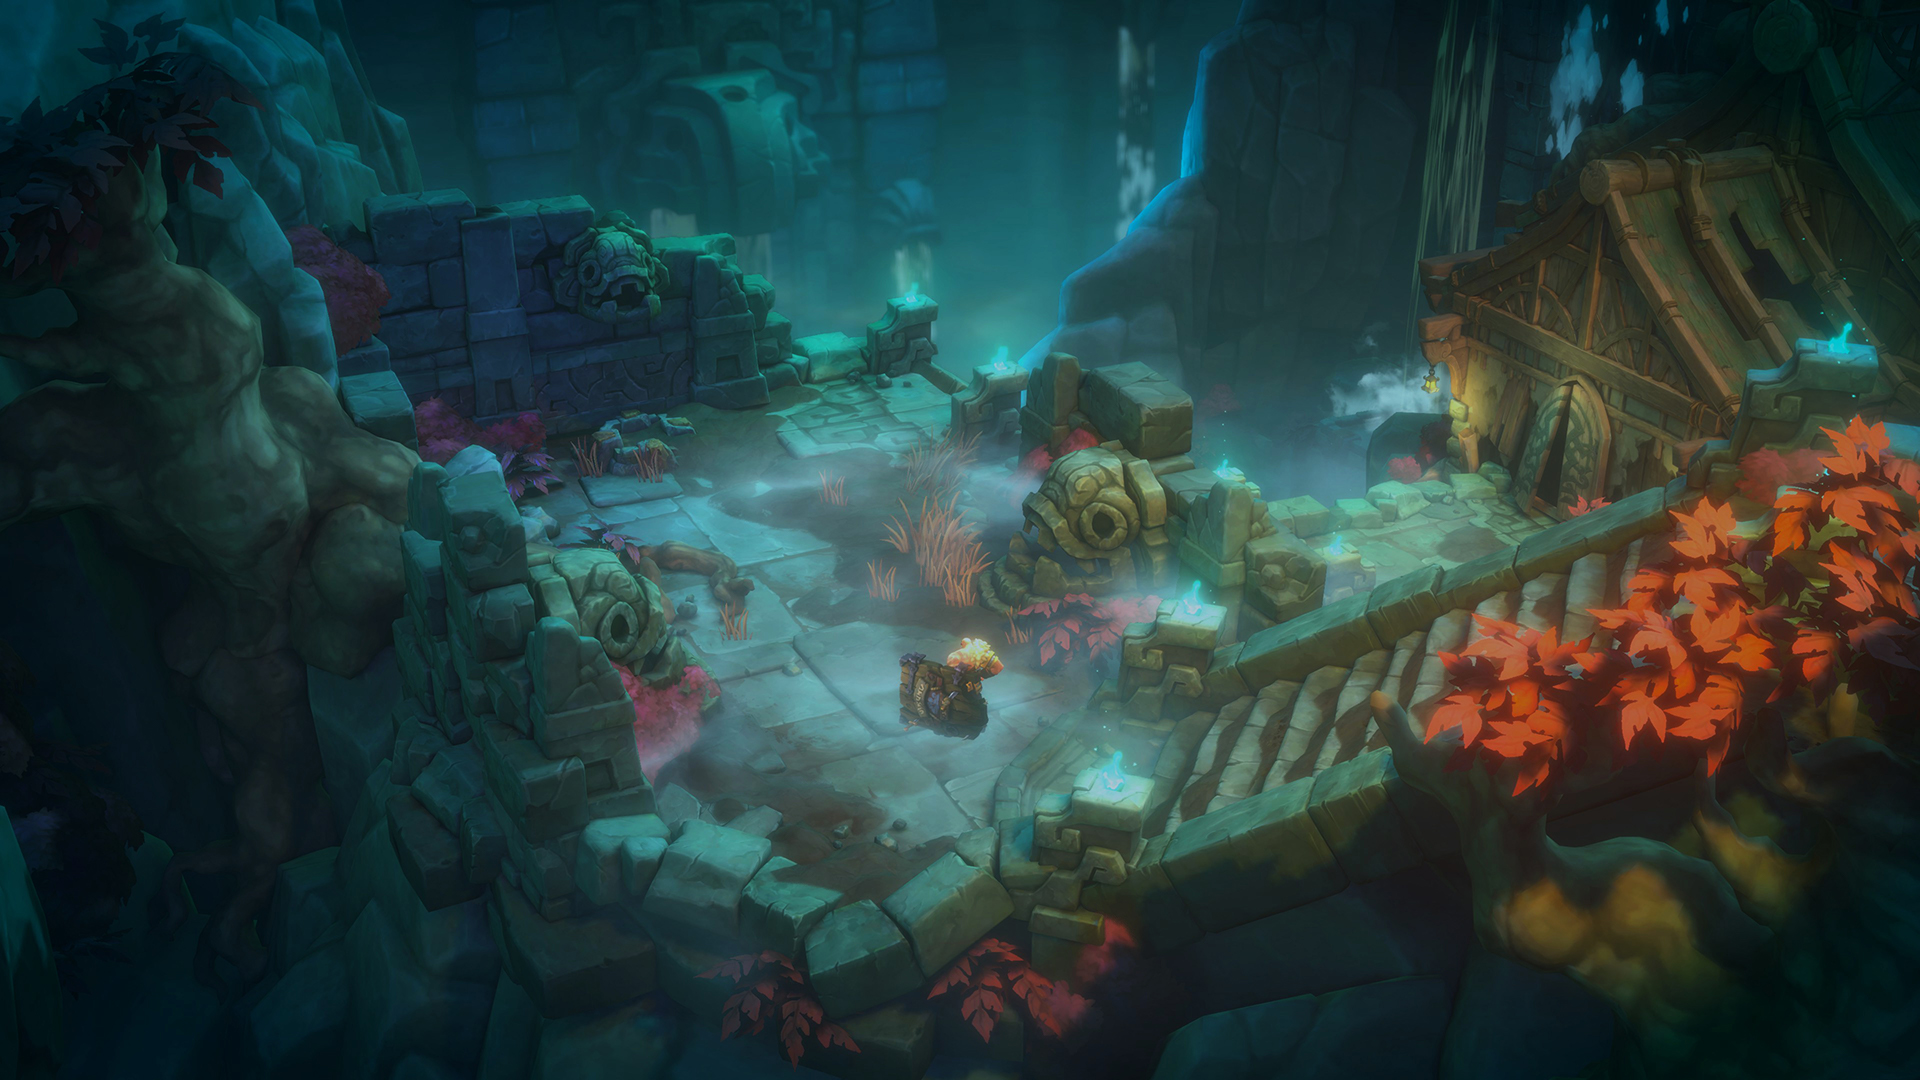 Riot Forge's turn-based RPG, Ruined King delayed to late 2021